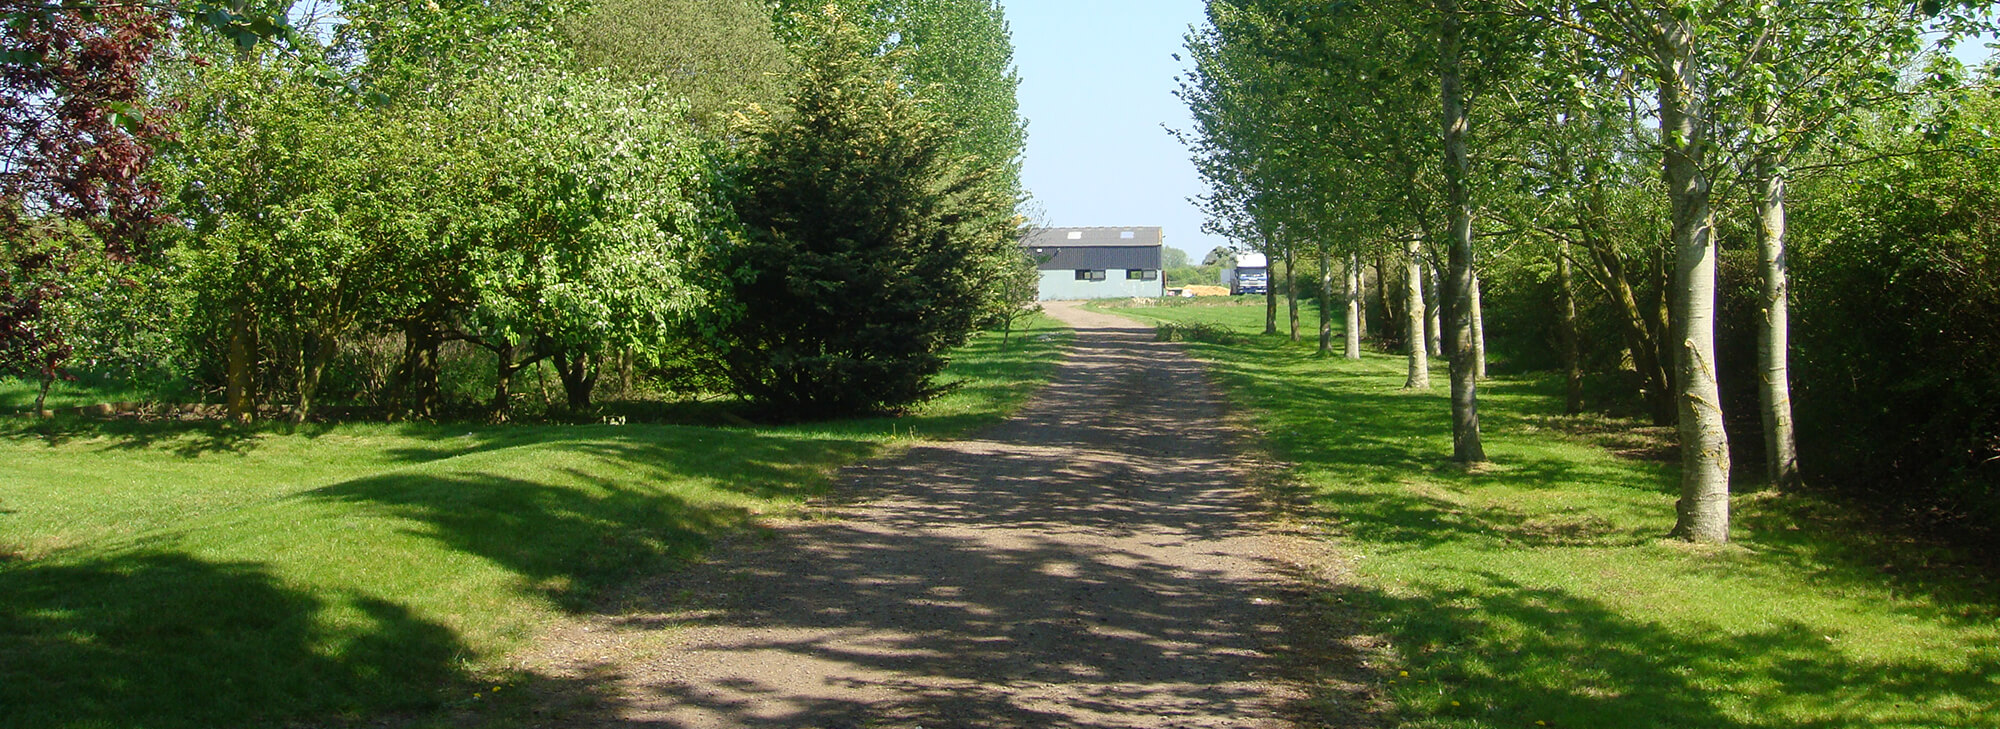 lyford stud livery yard, near wantage, east hanney, stanford in the vale, oxfordshire